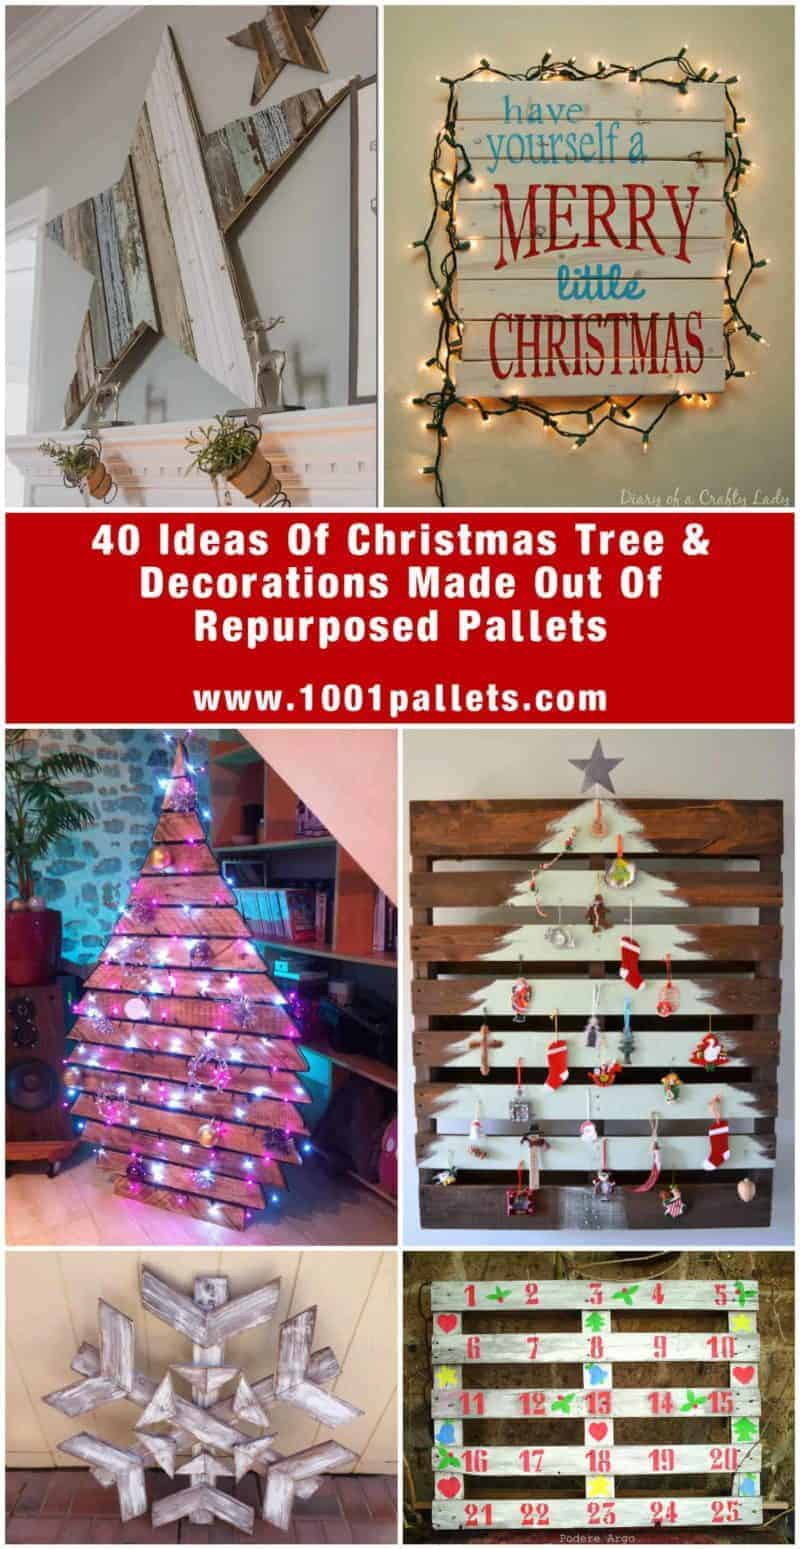 65 pallet christmas trees holiday pallet decorations ideas 1001 pallets - Pallet Christmas Decoration Ideas